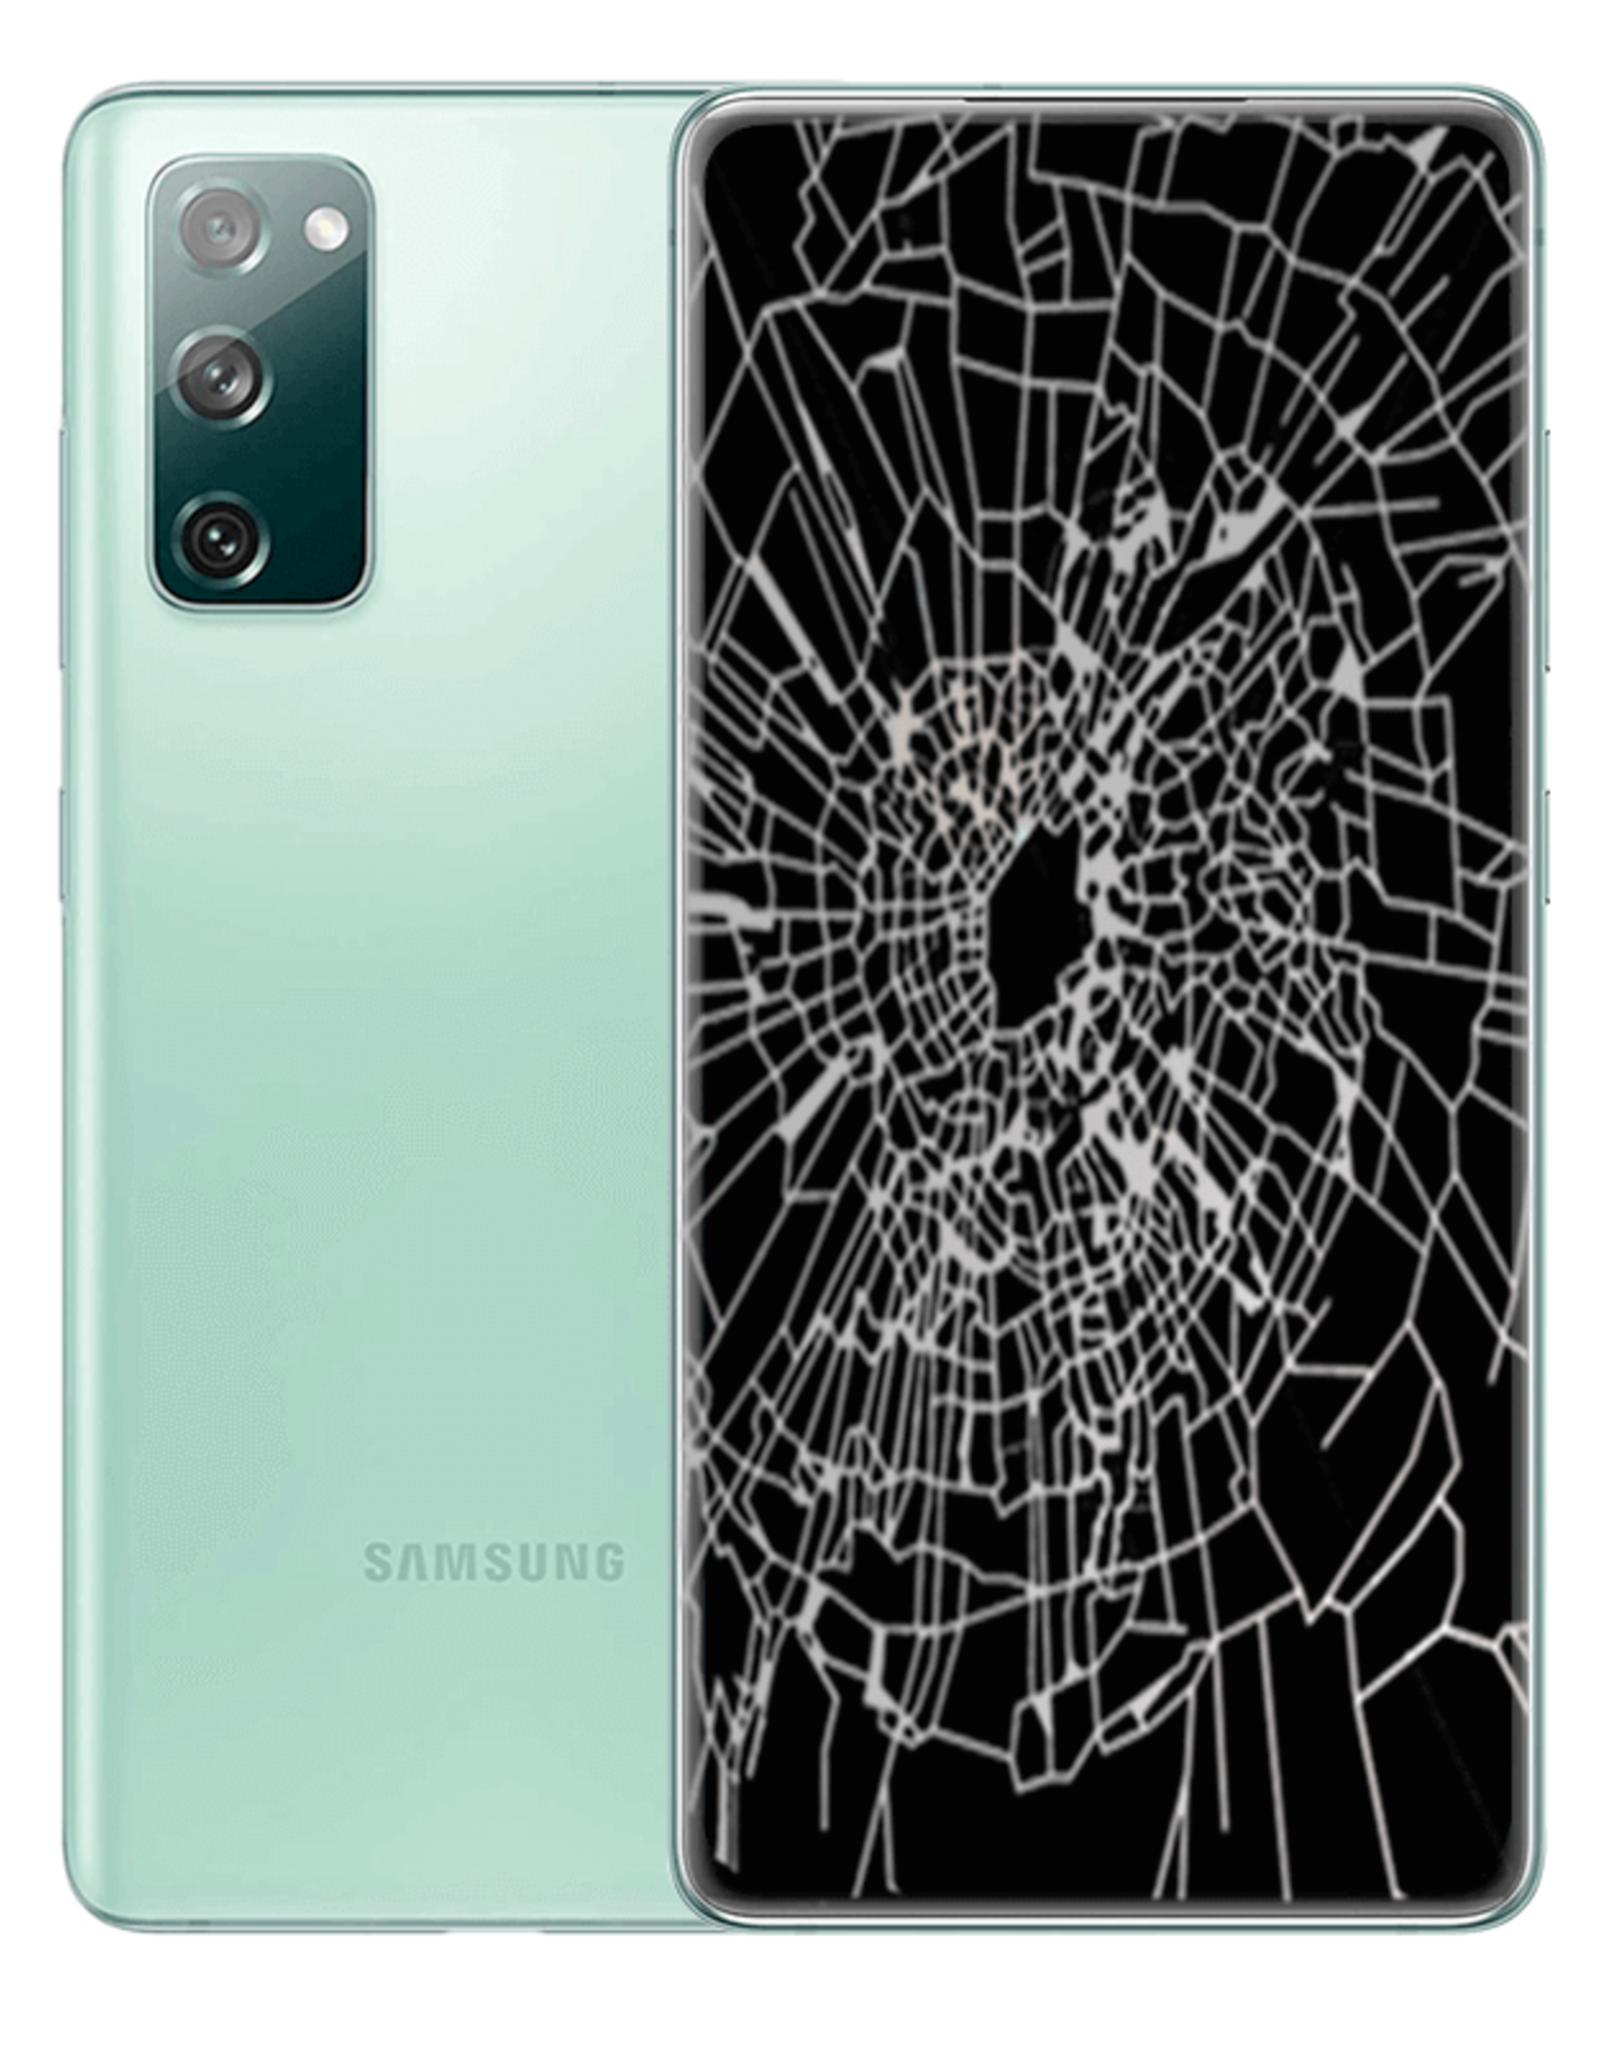 Samsung Samsung Galaxy S20 FE Screen Replacement